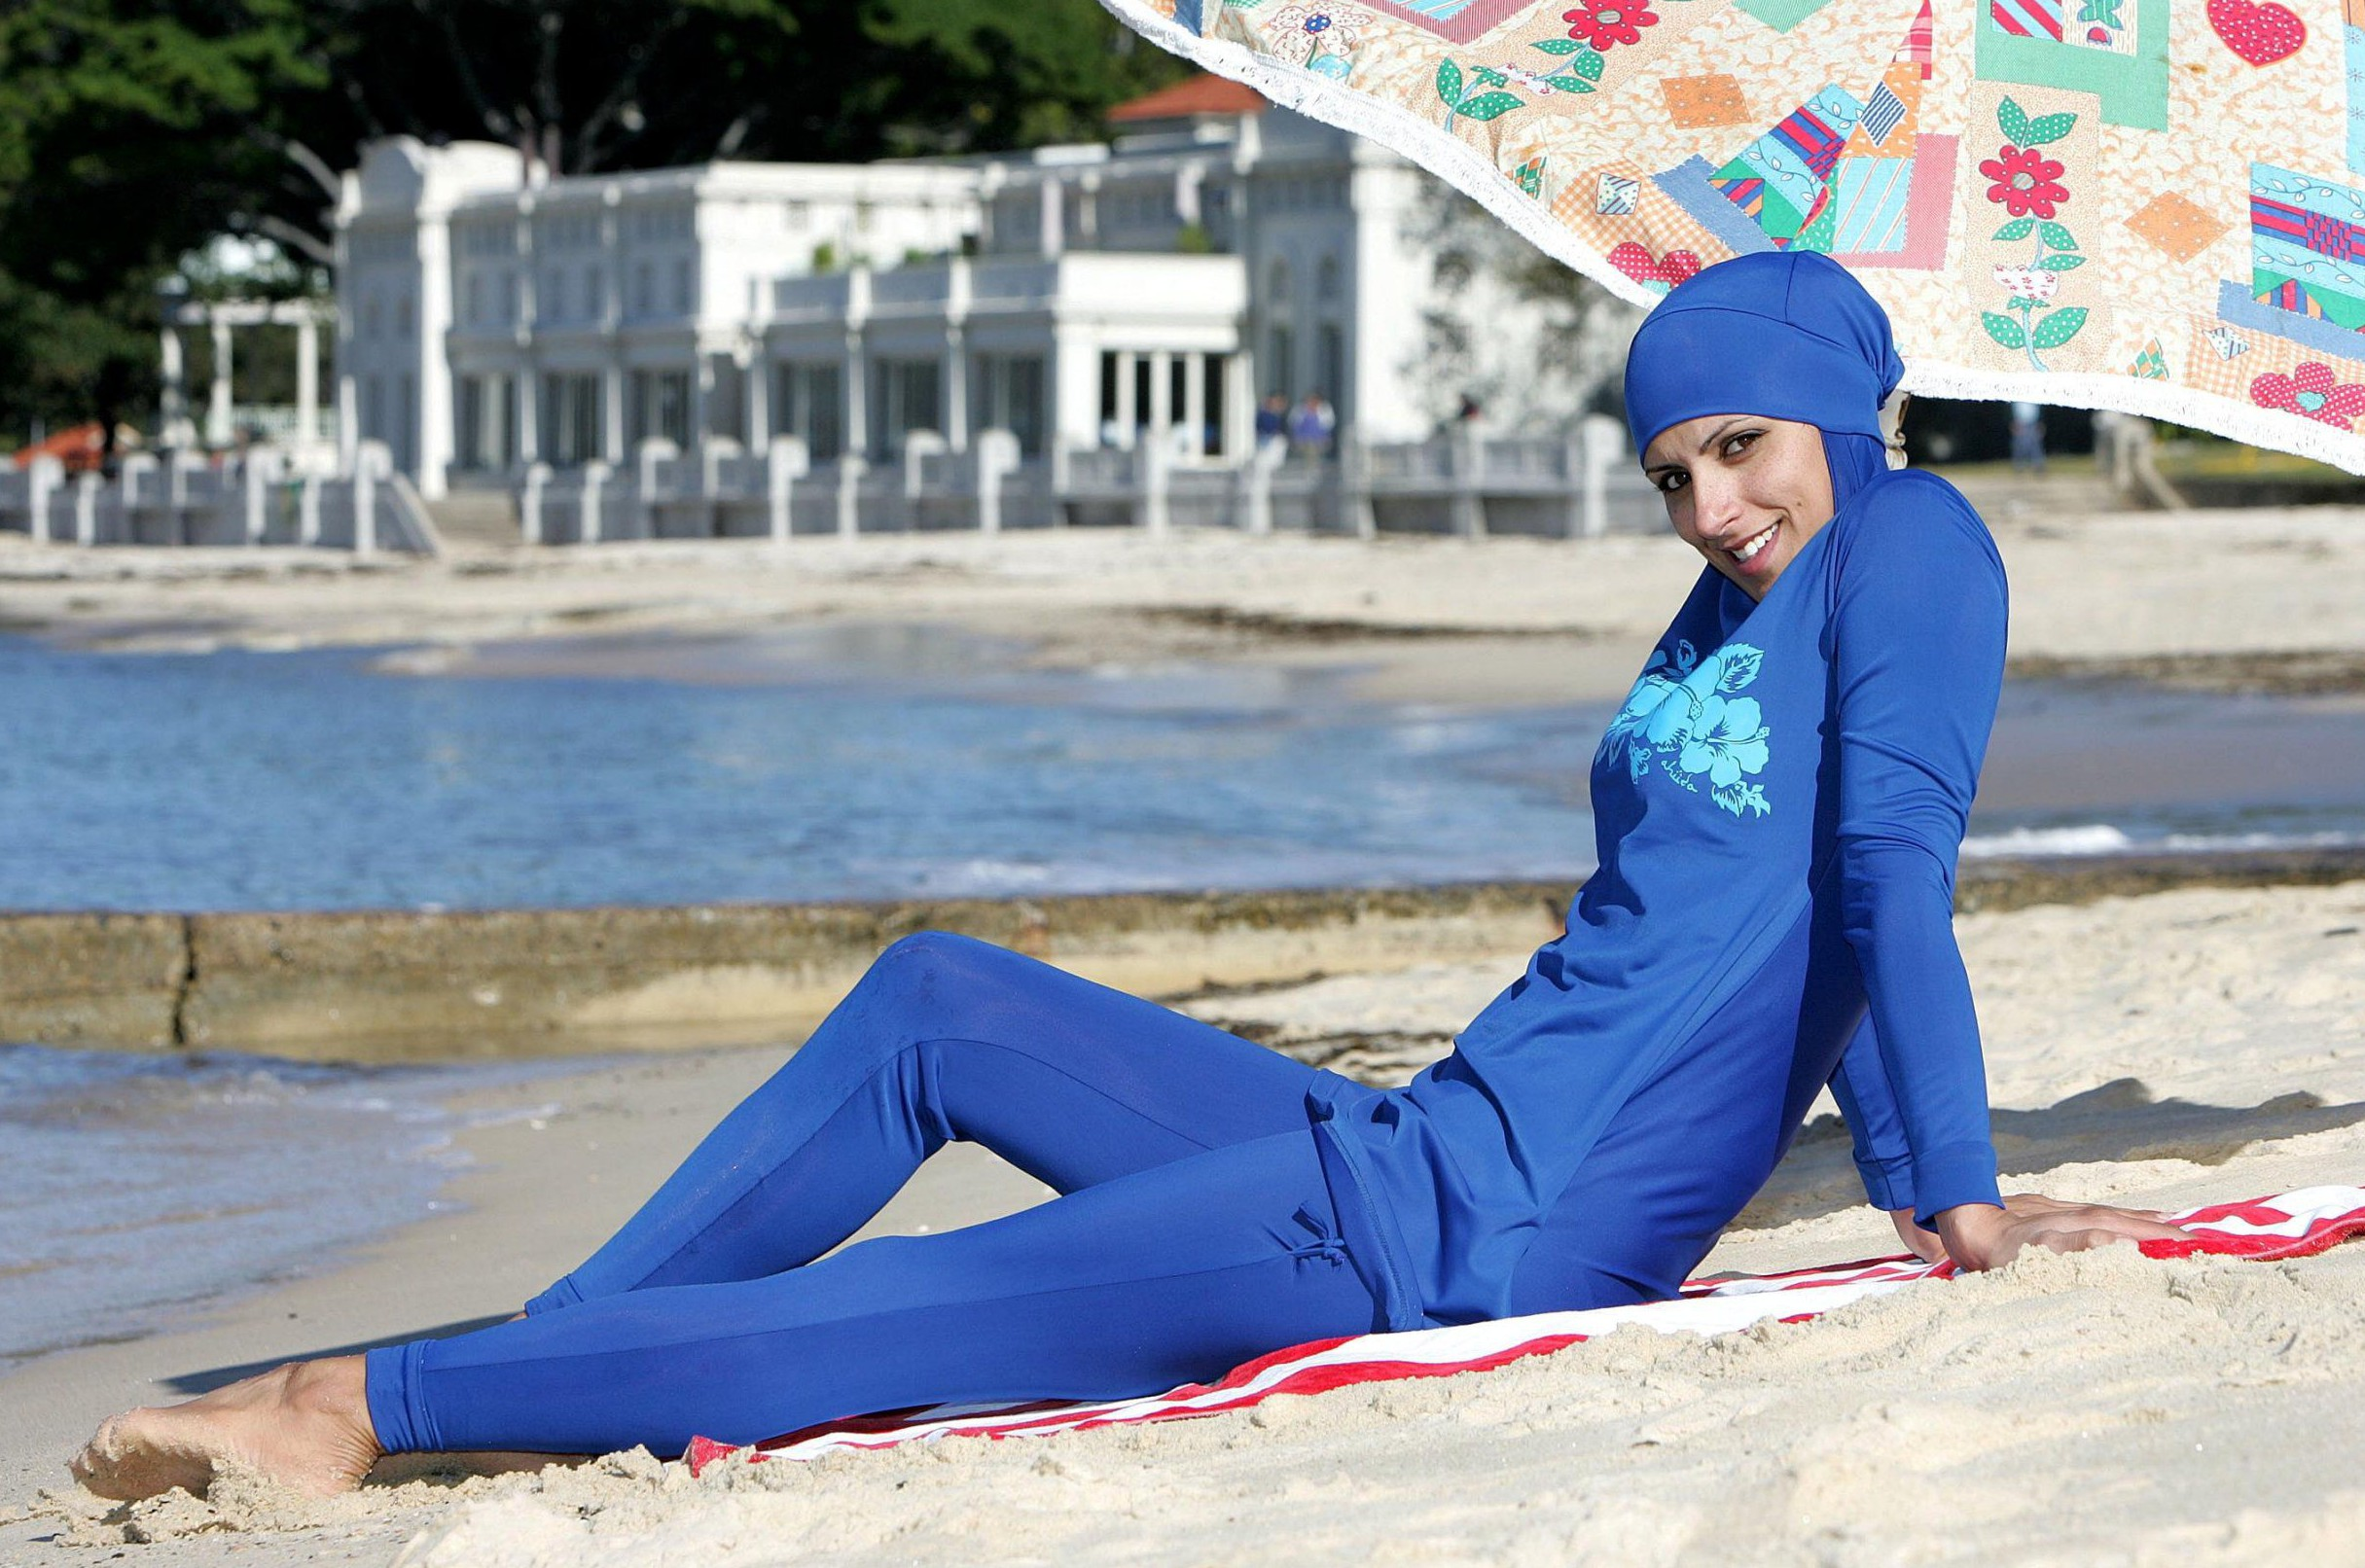 "Mandatory Credit: Photo by REX/Shutterstock (672445e)nThe ""Burqini"" Swimsuit, a revolution in swimwear design for Muslim women. Designed by Aheda Zanetti from Sydney, Australia, the ""Burqini"" preserves modesty of dress whilst being made of a lightweight, quickdrying, UV-protecting fabric.nThe 'Burqini' swimsuit for Muslim women, Sydney, Australia - 21 Jun 2007nn"